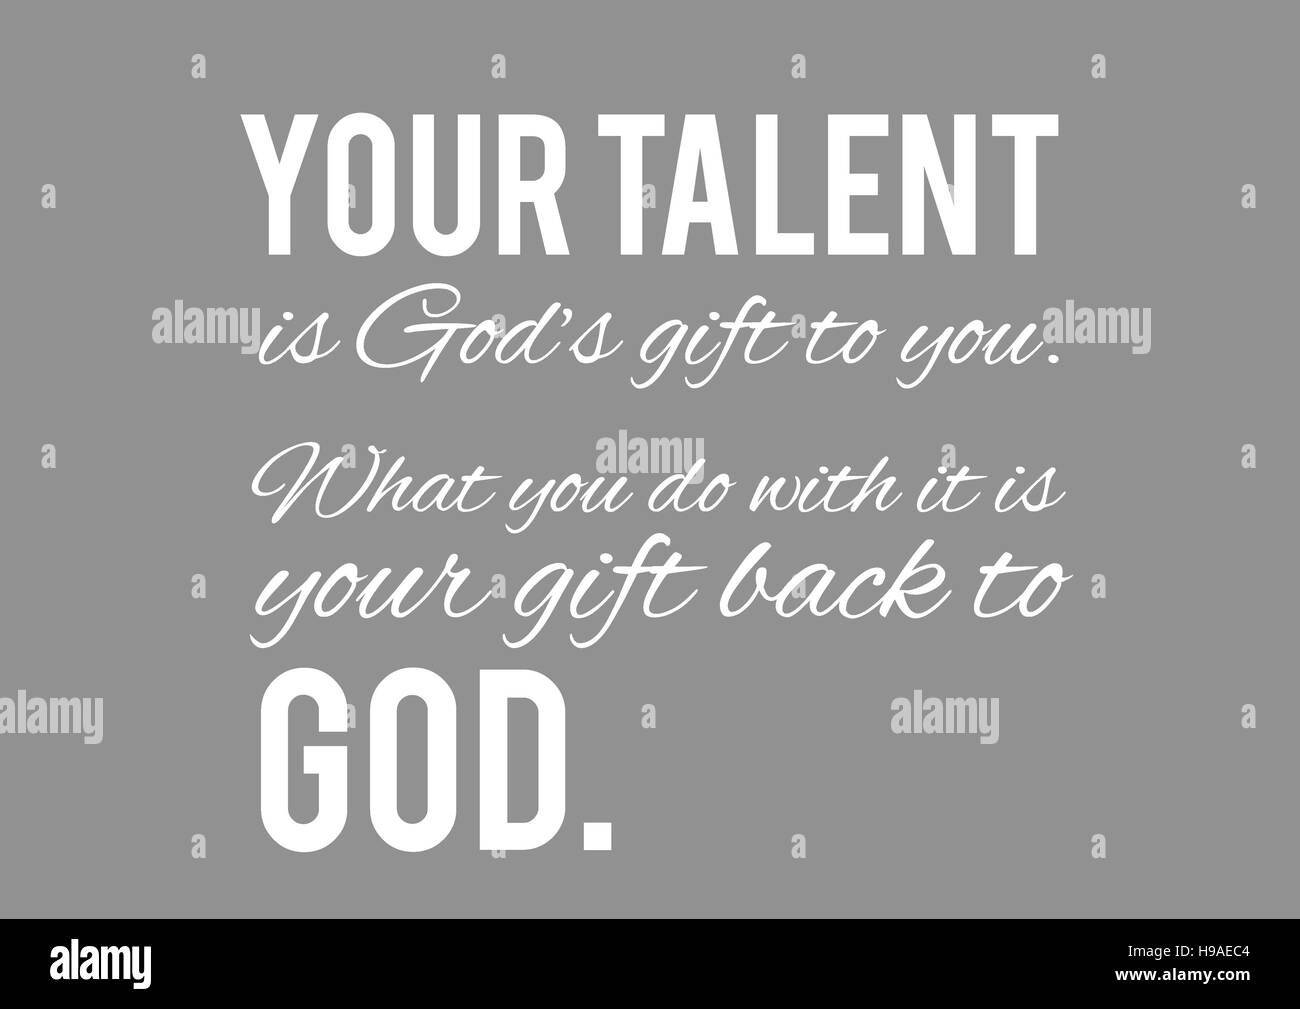 God Quote Your Talent God's Gift Your Back Godmotivation Poster